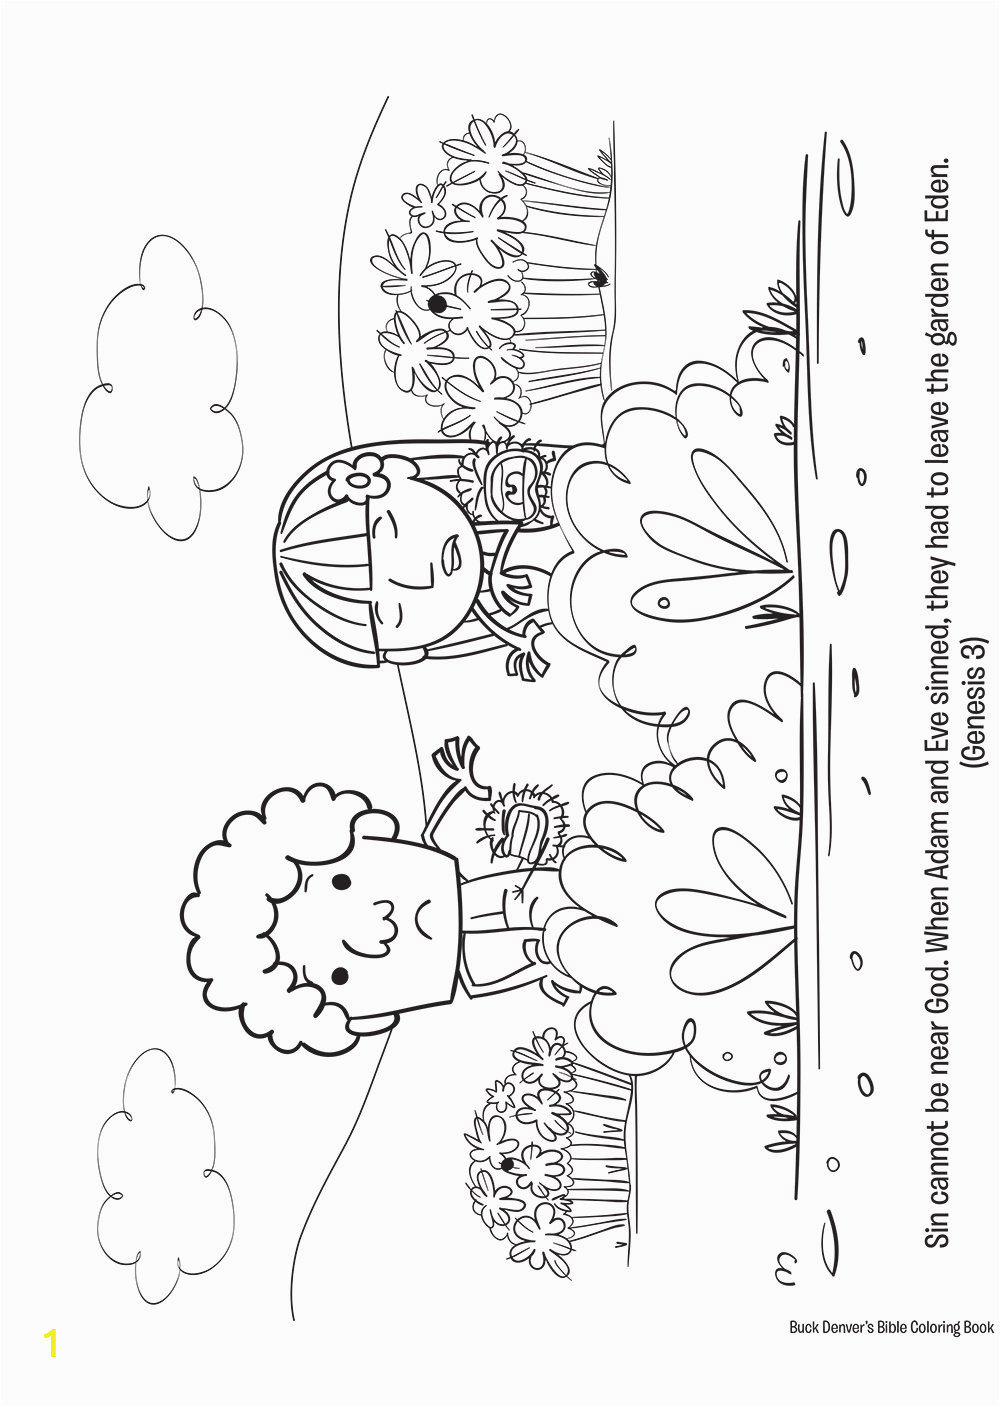 coloring book old testament stories